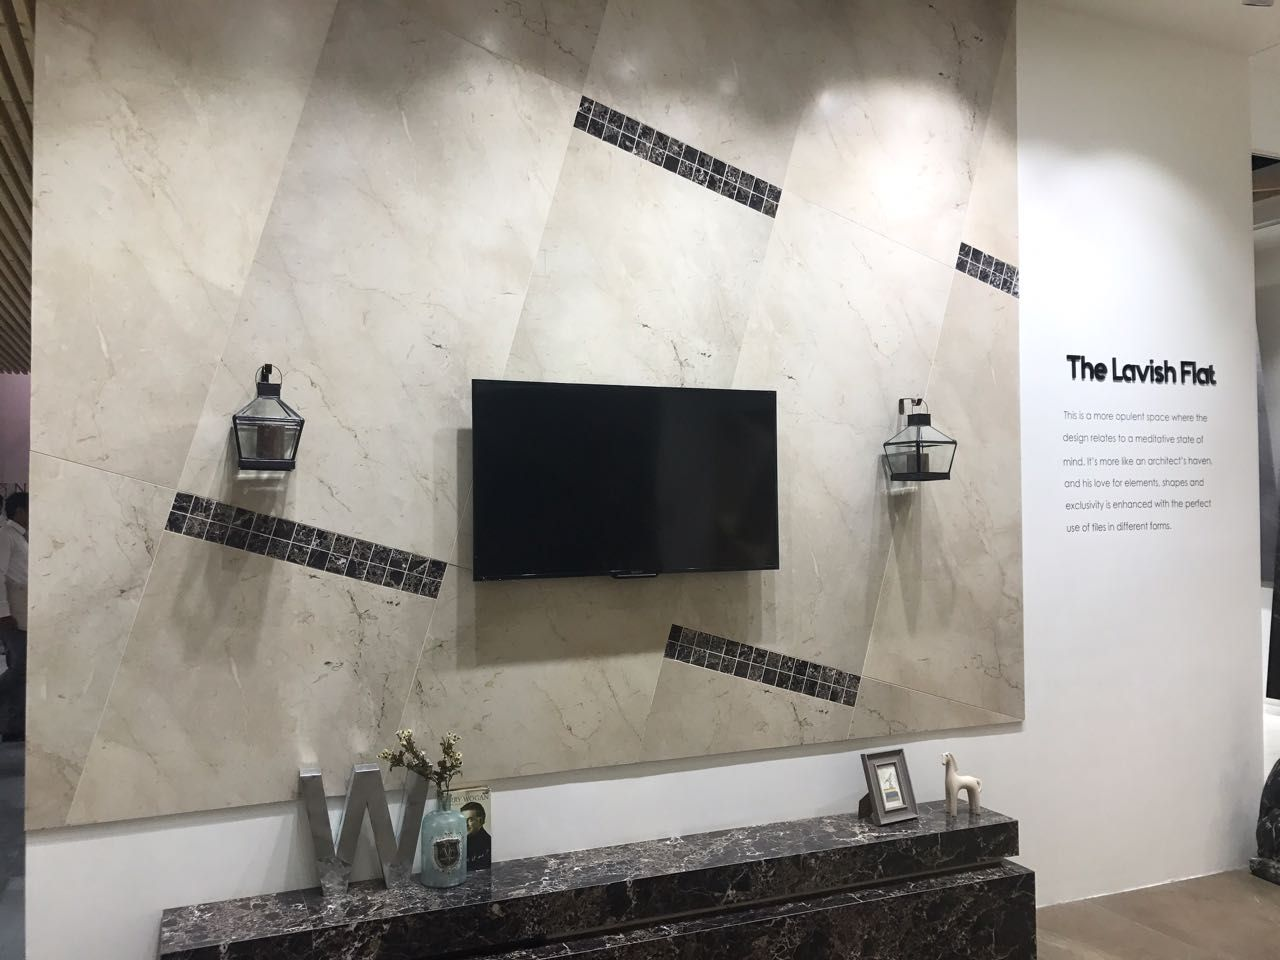 Ceramic Tiles Exhibit With Images Living Room Tiles Vitrified Tiles Ceramic Tiles